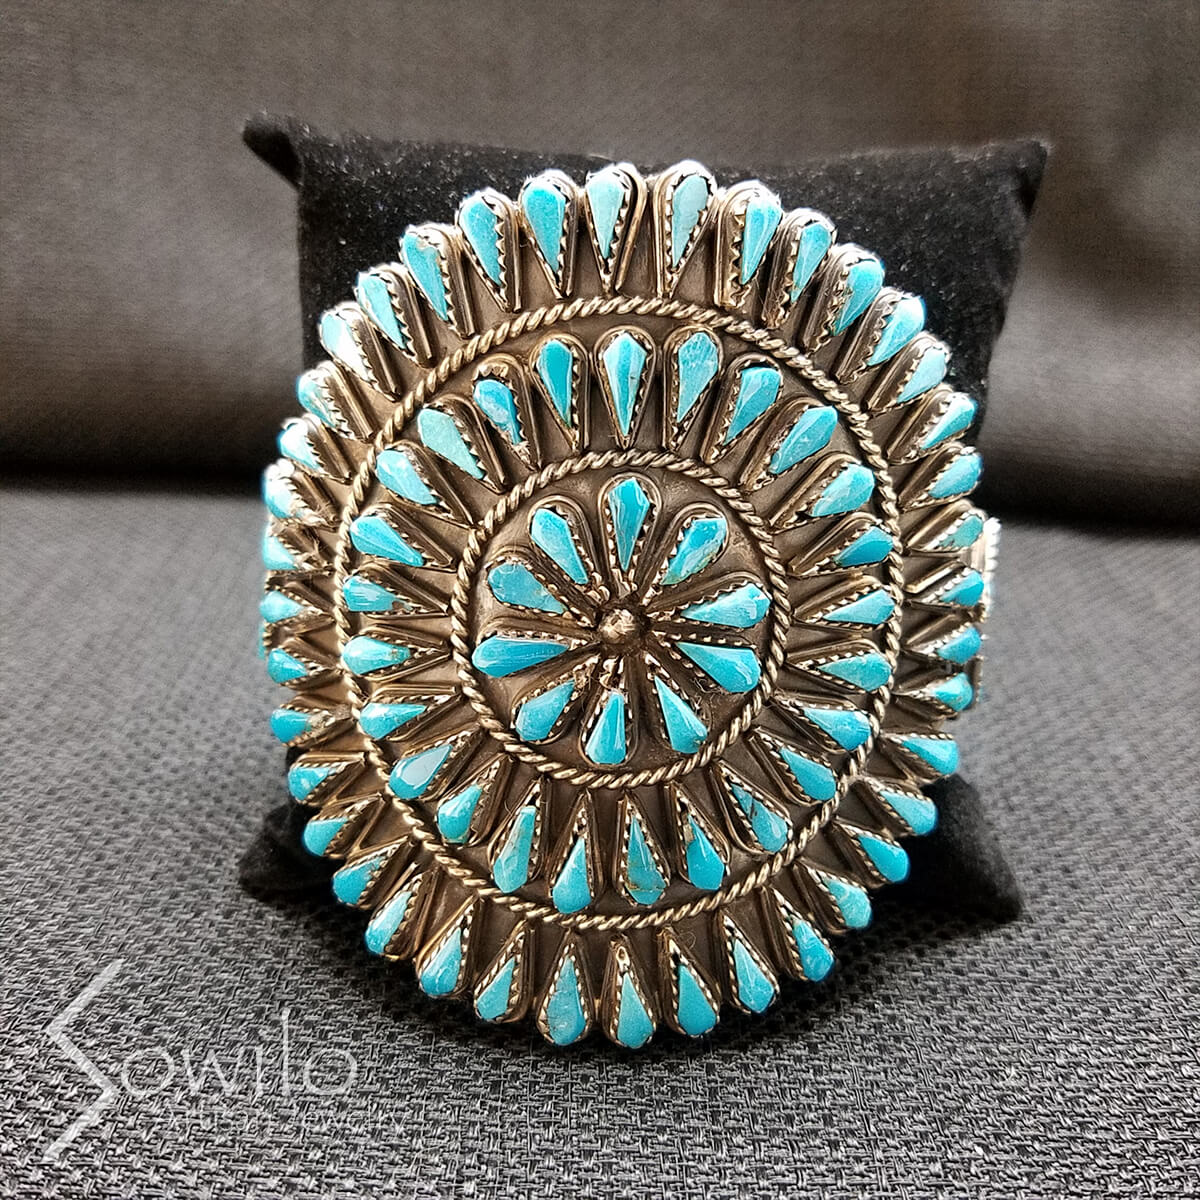 Gallery - Square - Sowilo Artisan Jewelry - Bracelet